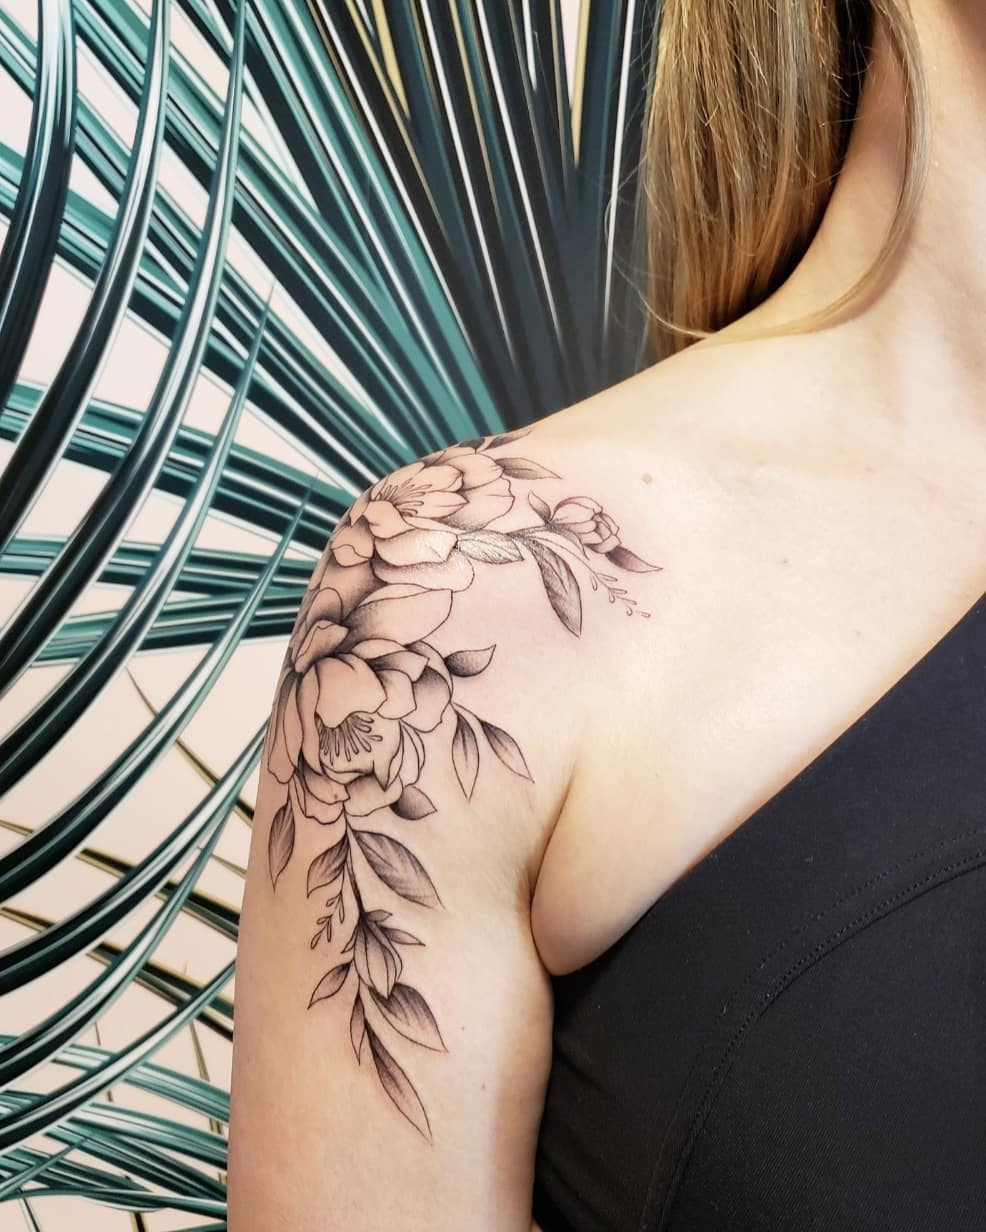 The Best Shoulder Tattoos for Women